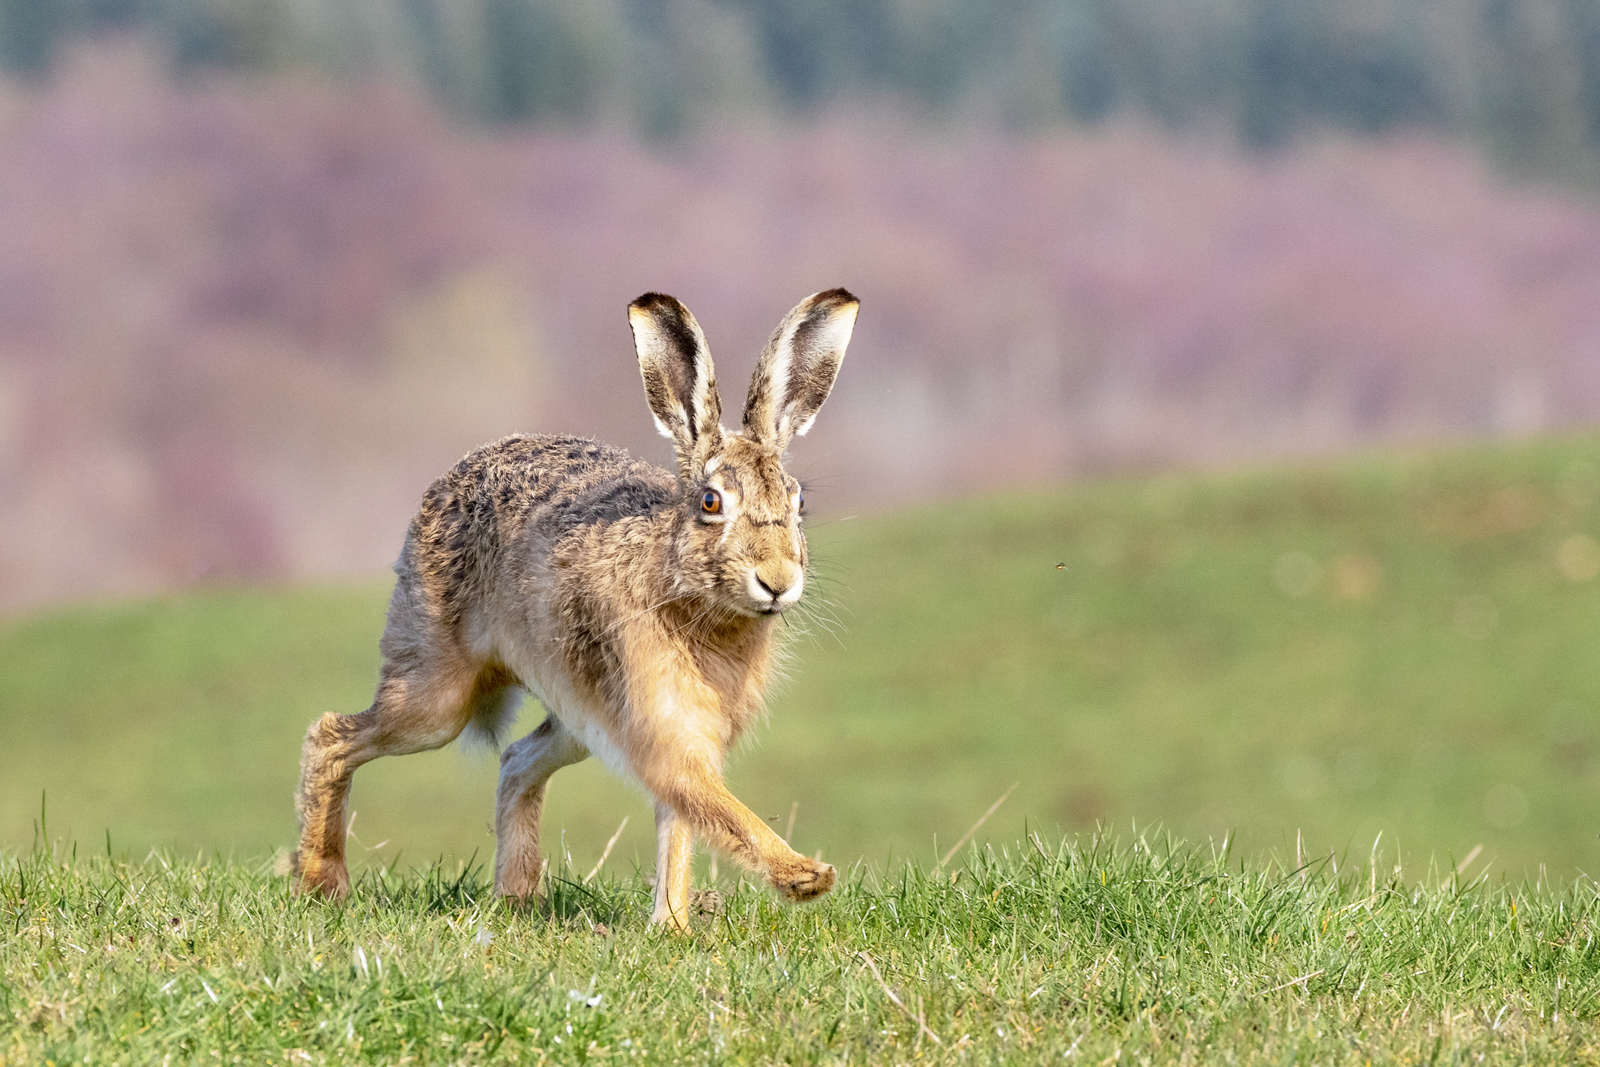 336 Brown hare strut